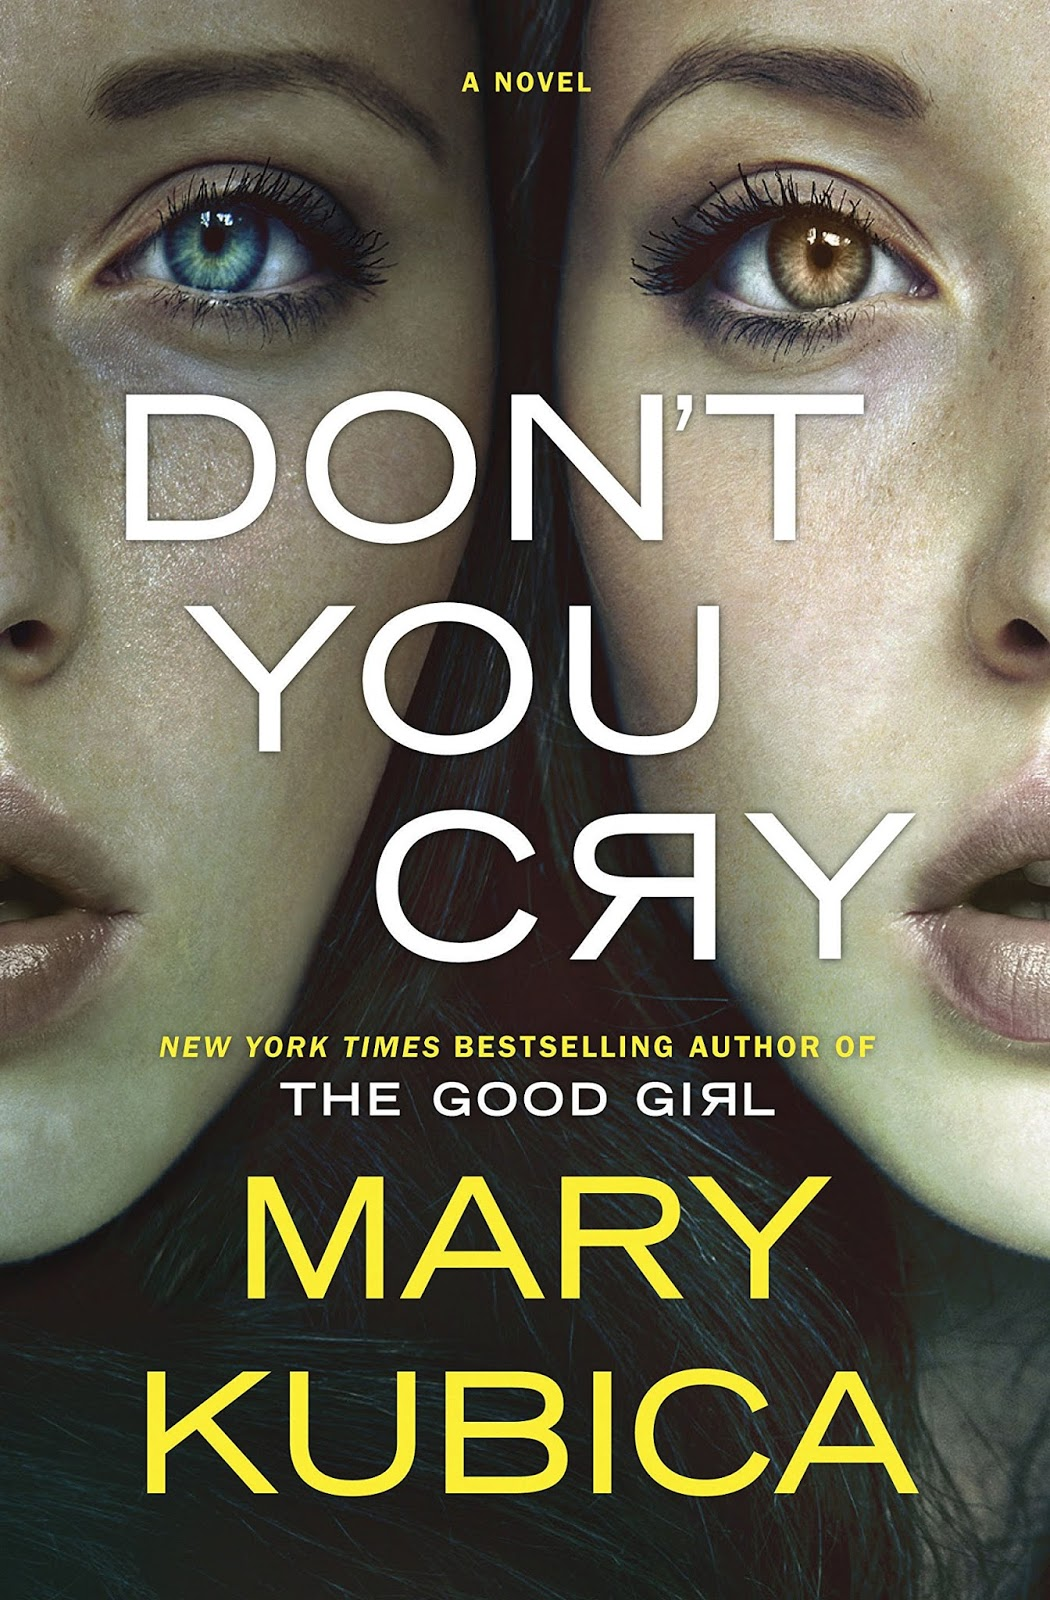 Don't You Cry by Mary Kubica